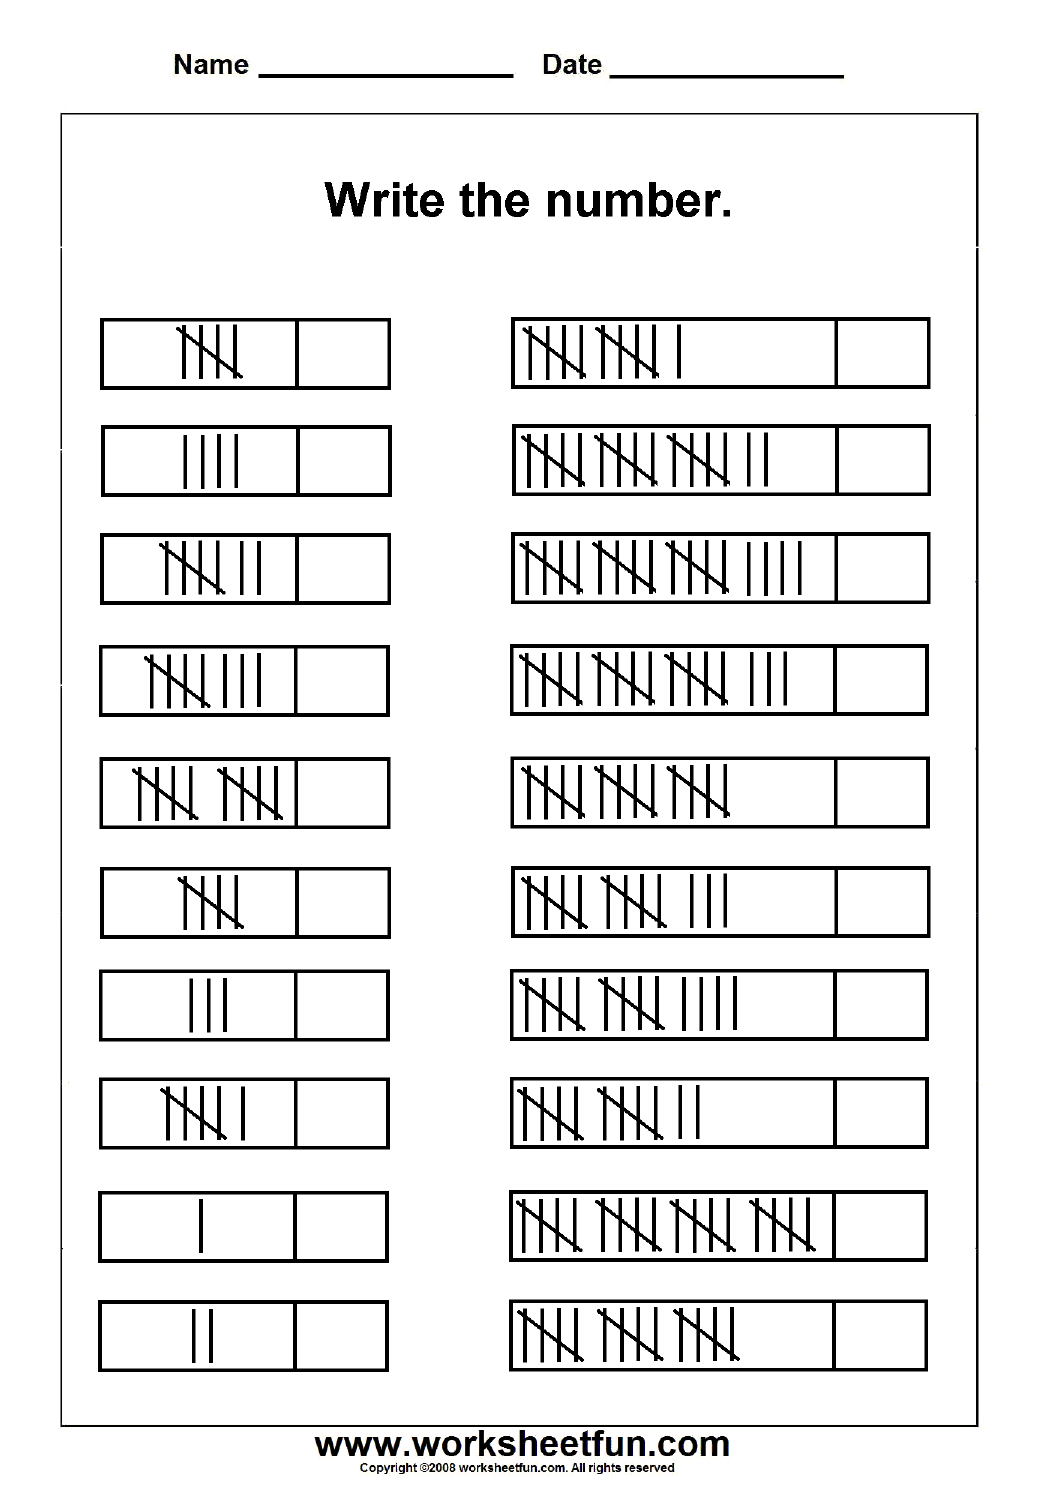 Printables Of Tally Mark Worksheets For 1st Grade